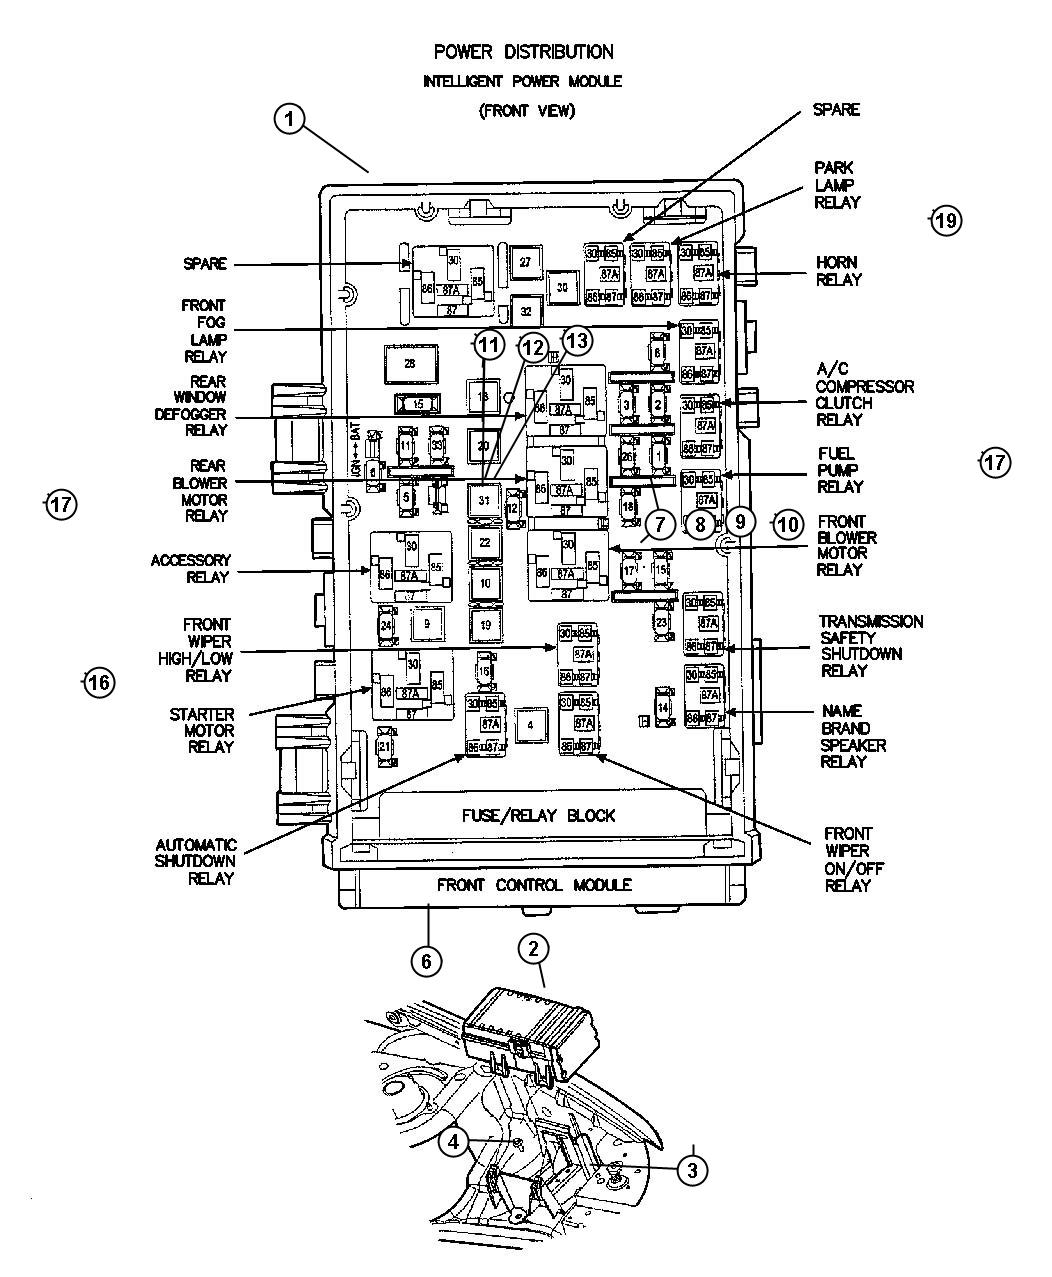 Diagram Chrysler Town And Country Interior Light Fuse